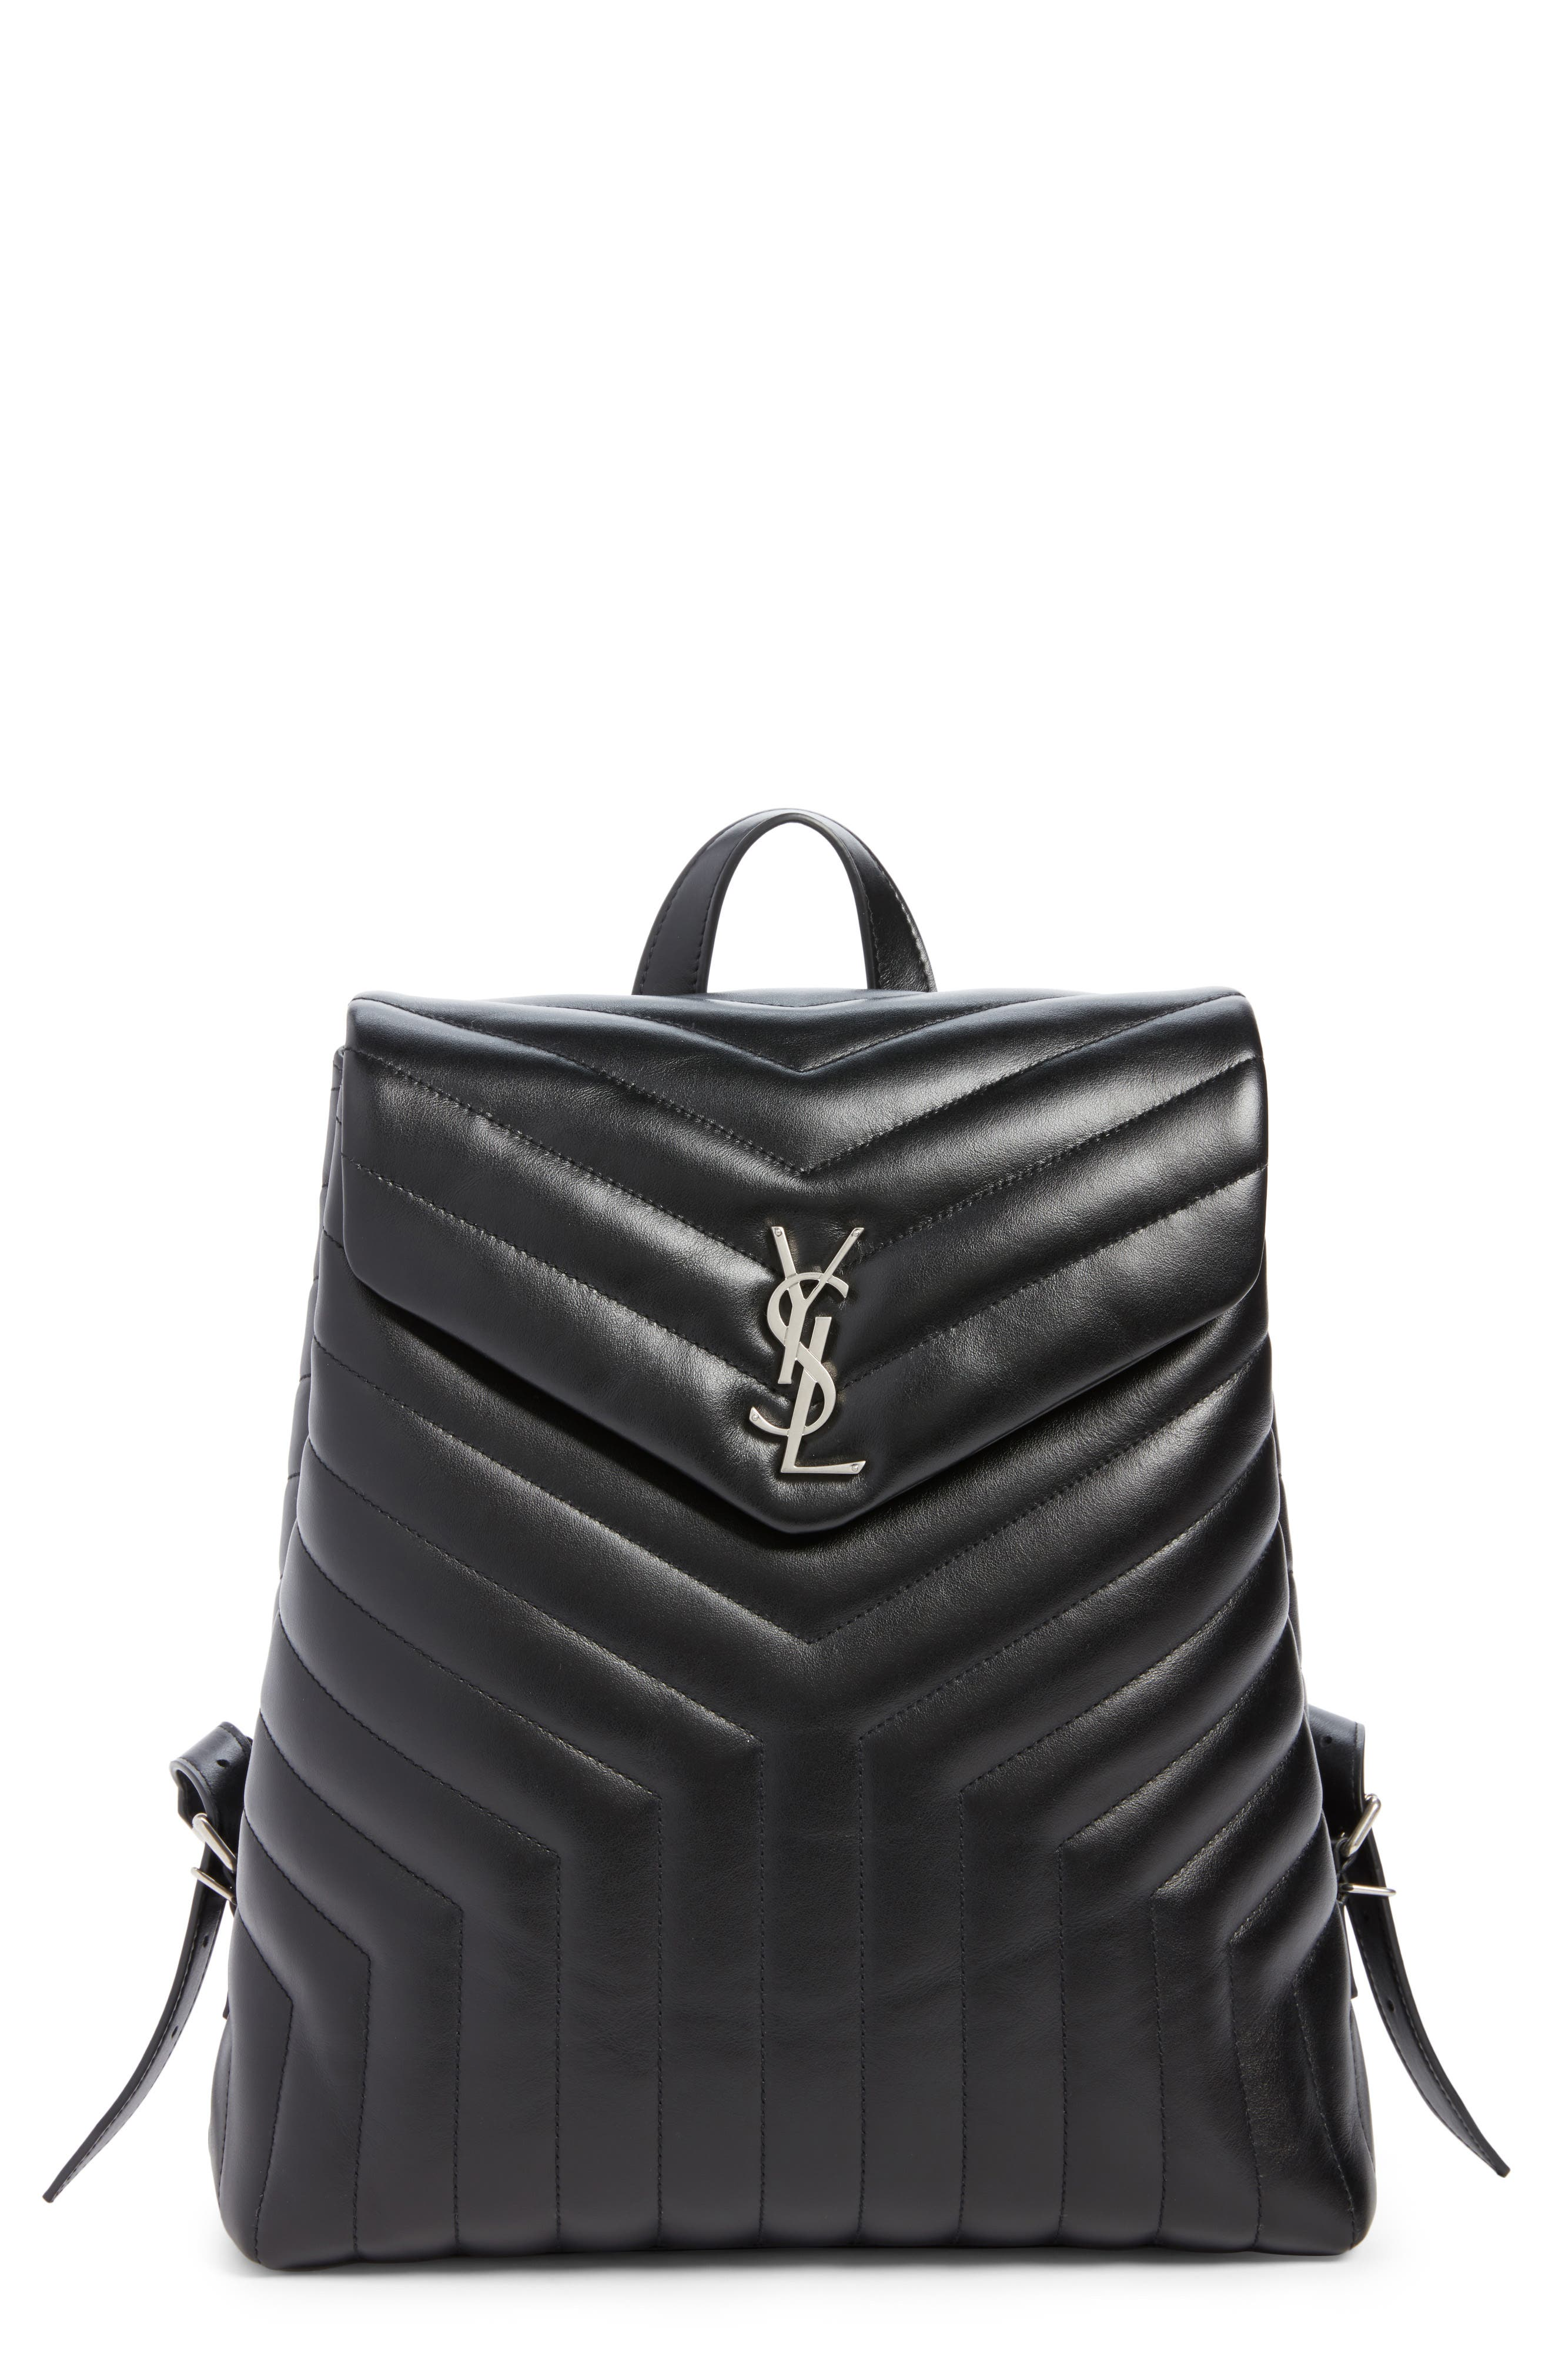 Medium Loulou Calfskin Leather Backpack,                         Main,                         color, Black